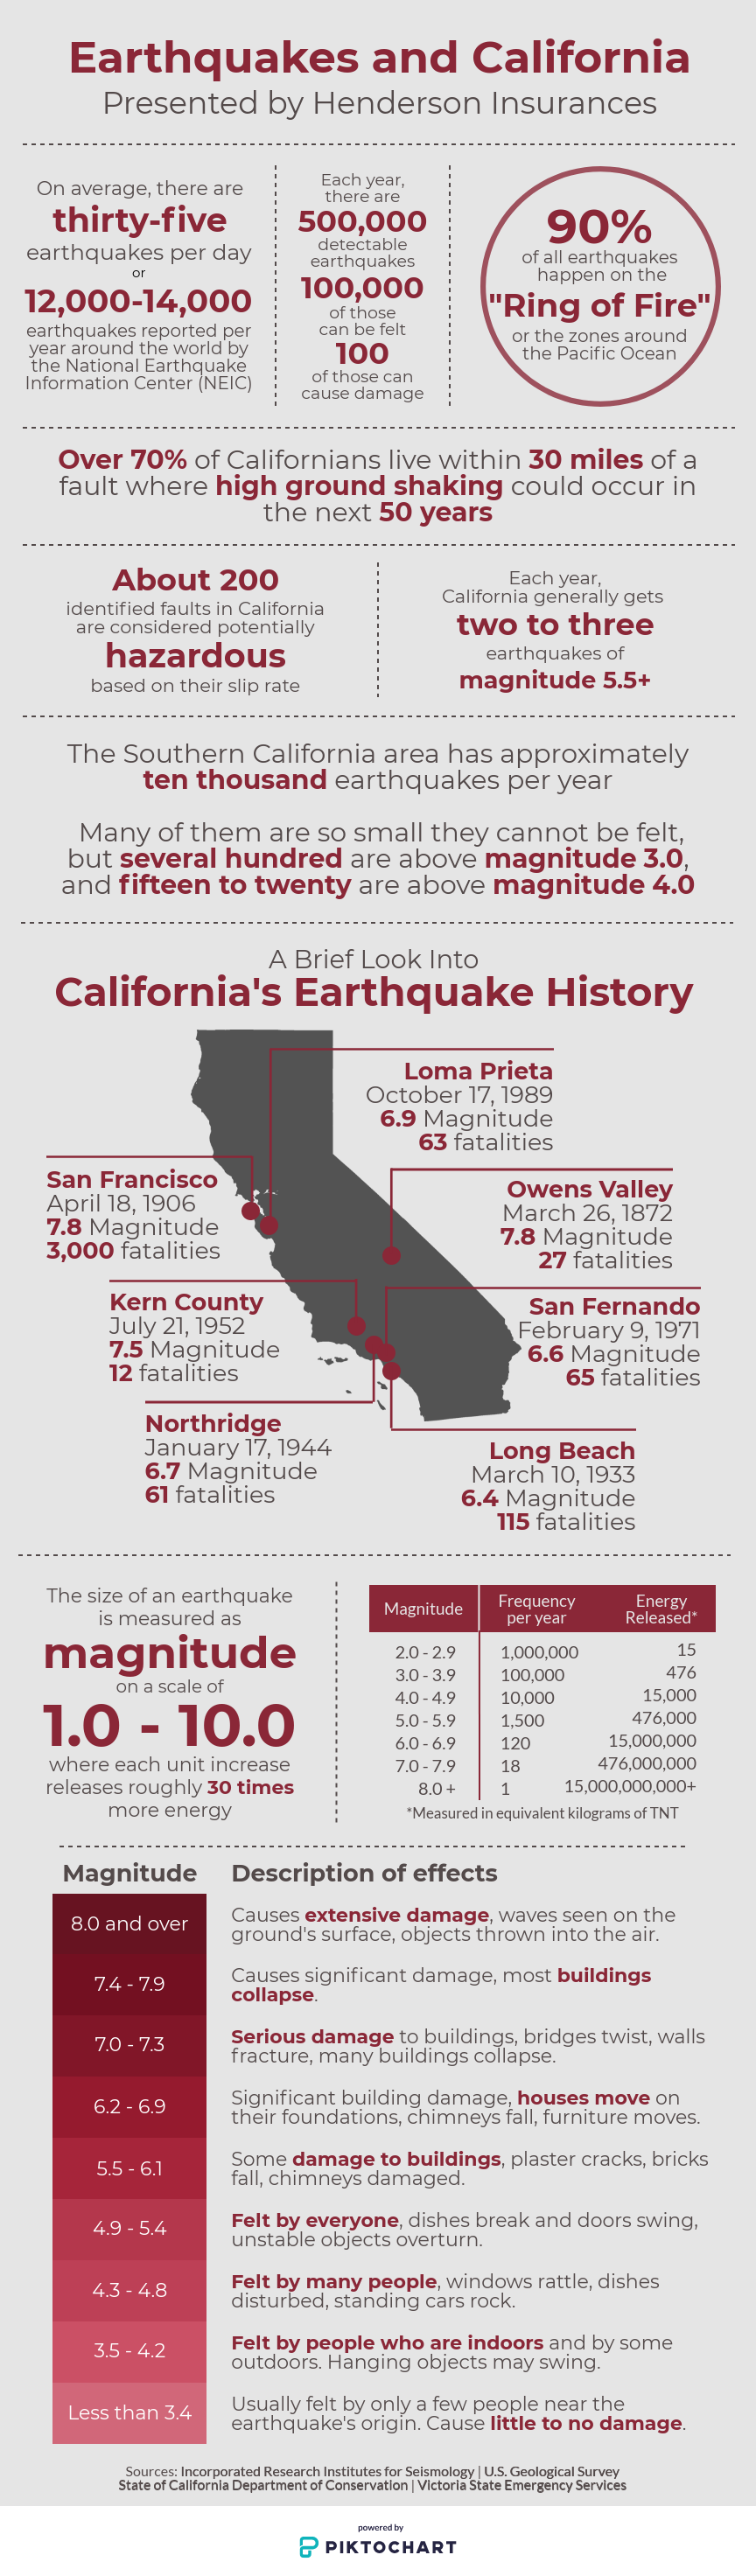 Earthquakes and California